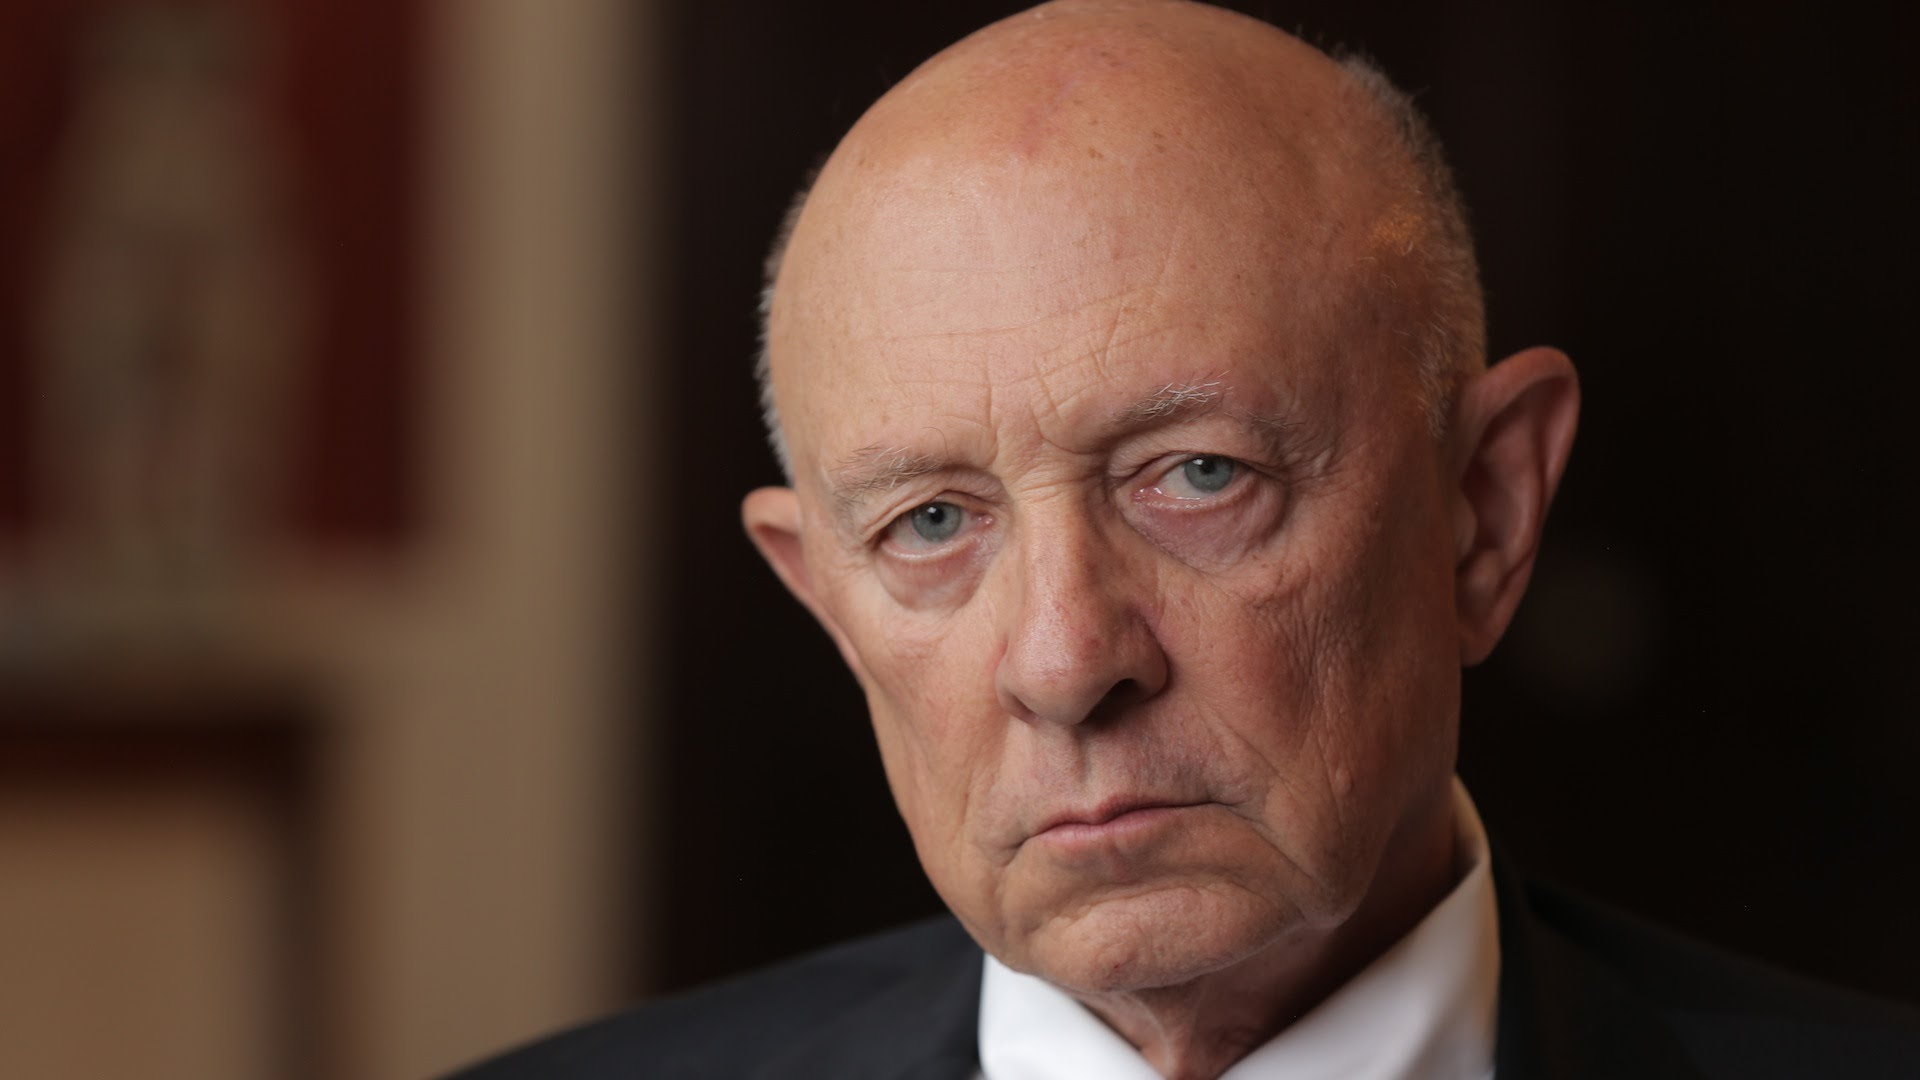 Former director of the U.S. Central Intelligence Agency James Woolsey.